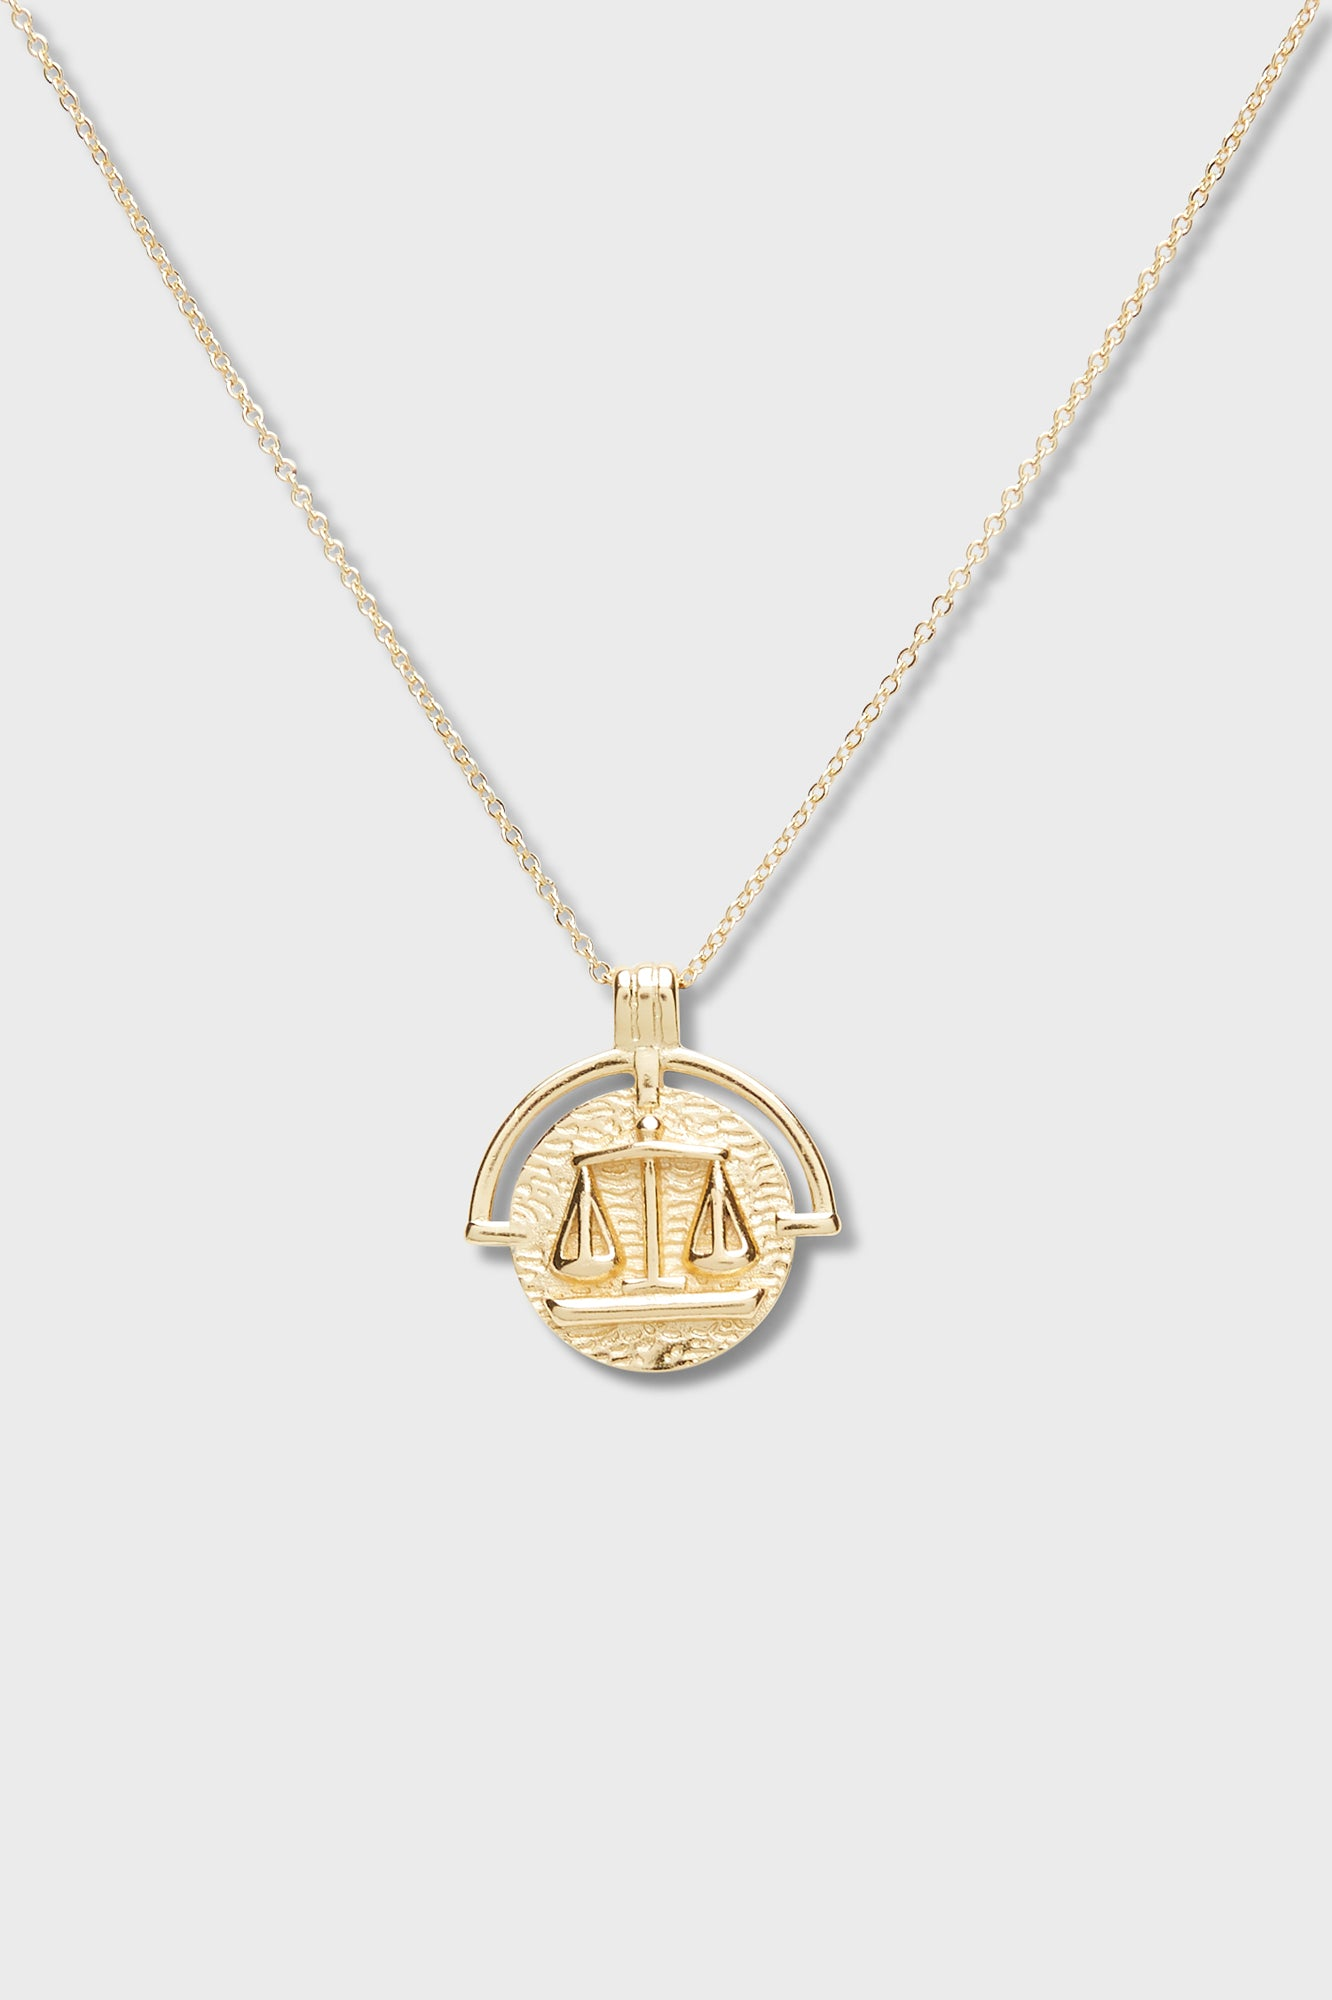 Astrology Necklace - Libra